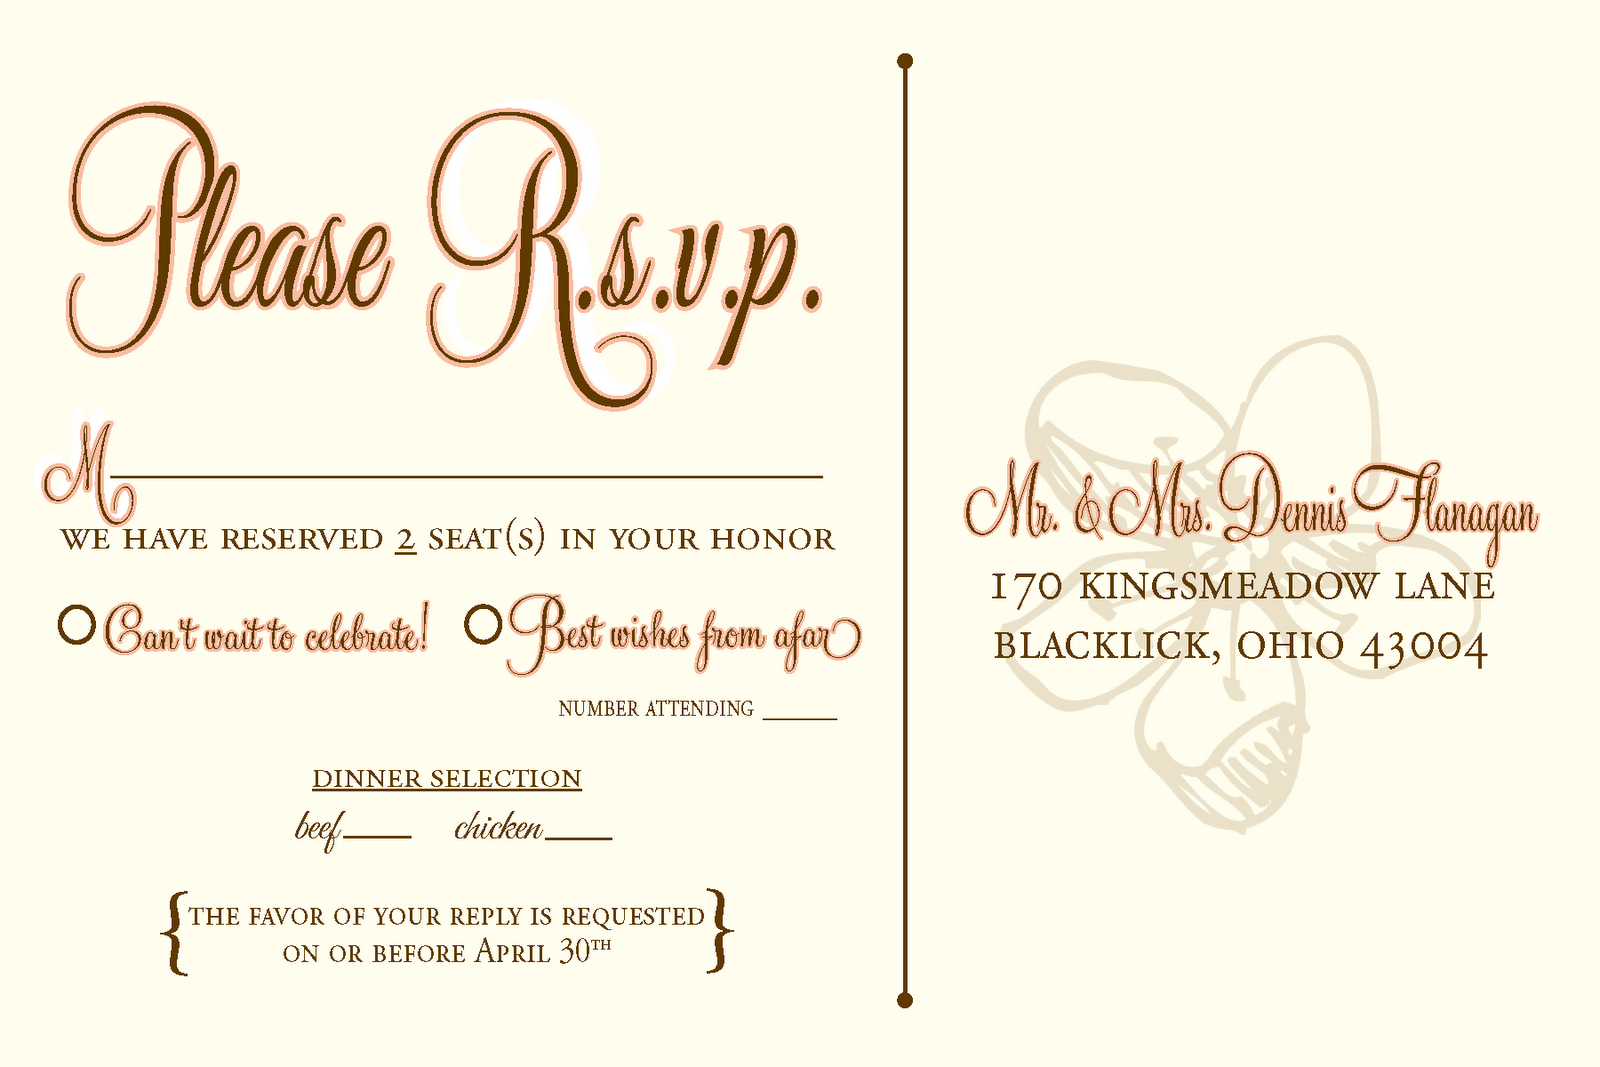 Rsvp Wording Template rsvp invitation wording wedding invitation – Sample Rsvp Wedding Cards